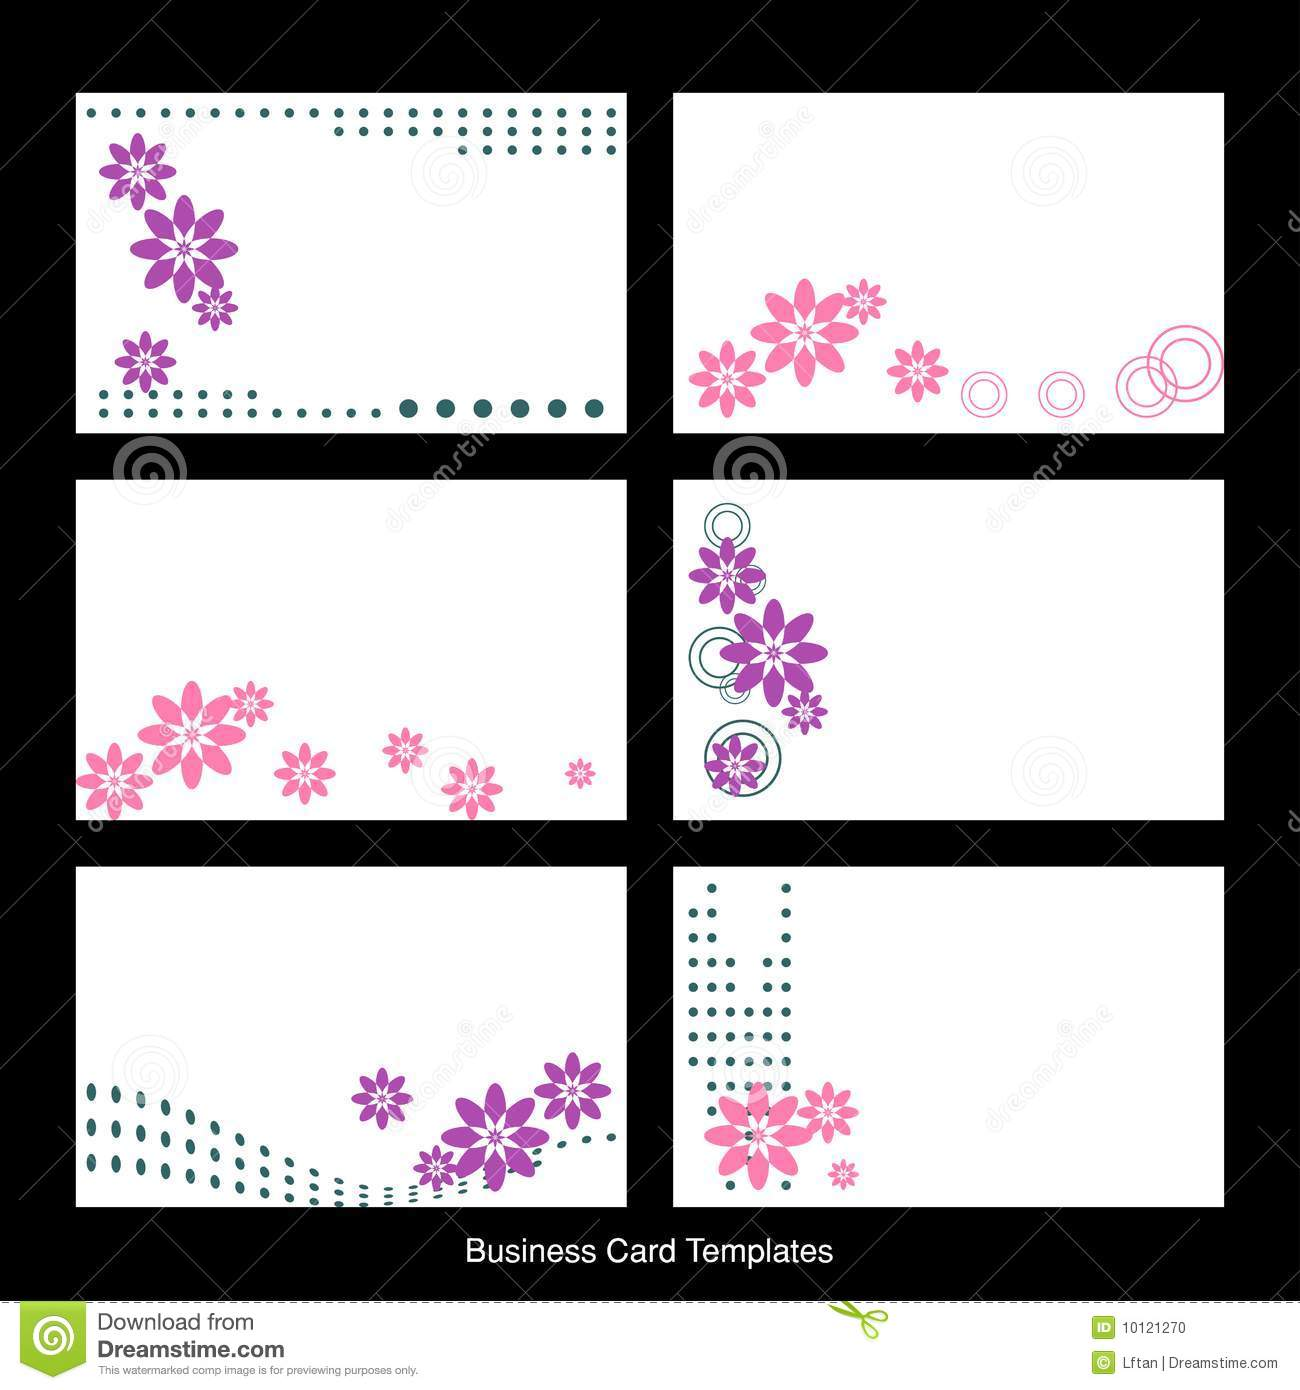 business card templates stock vector illustration of